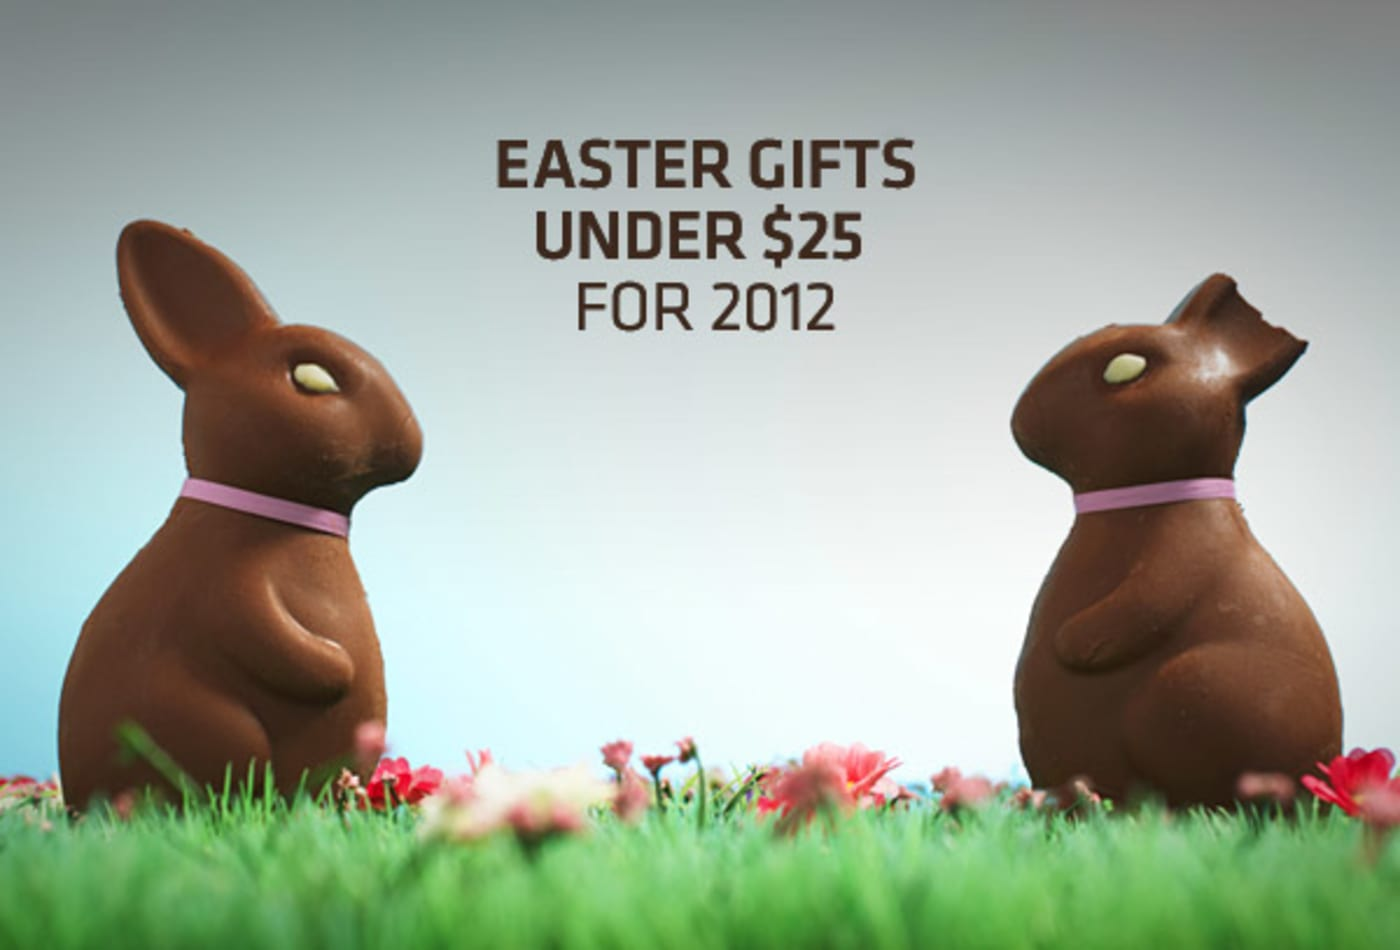 easter-gifts-under-25-cover1.jpg